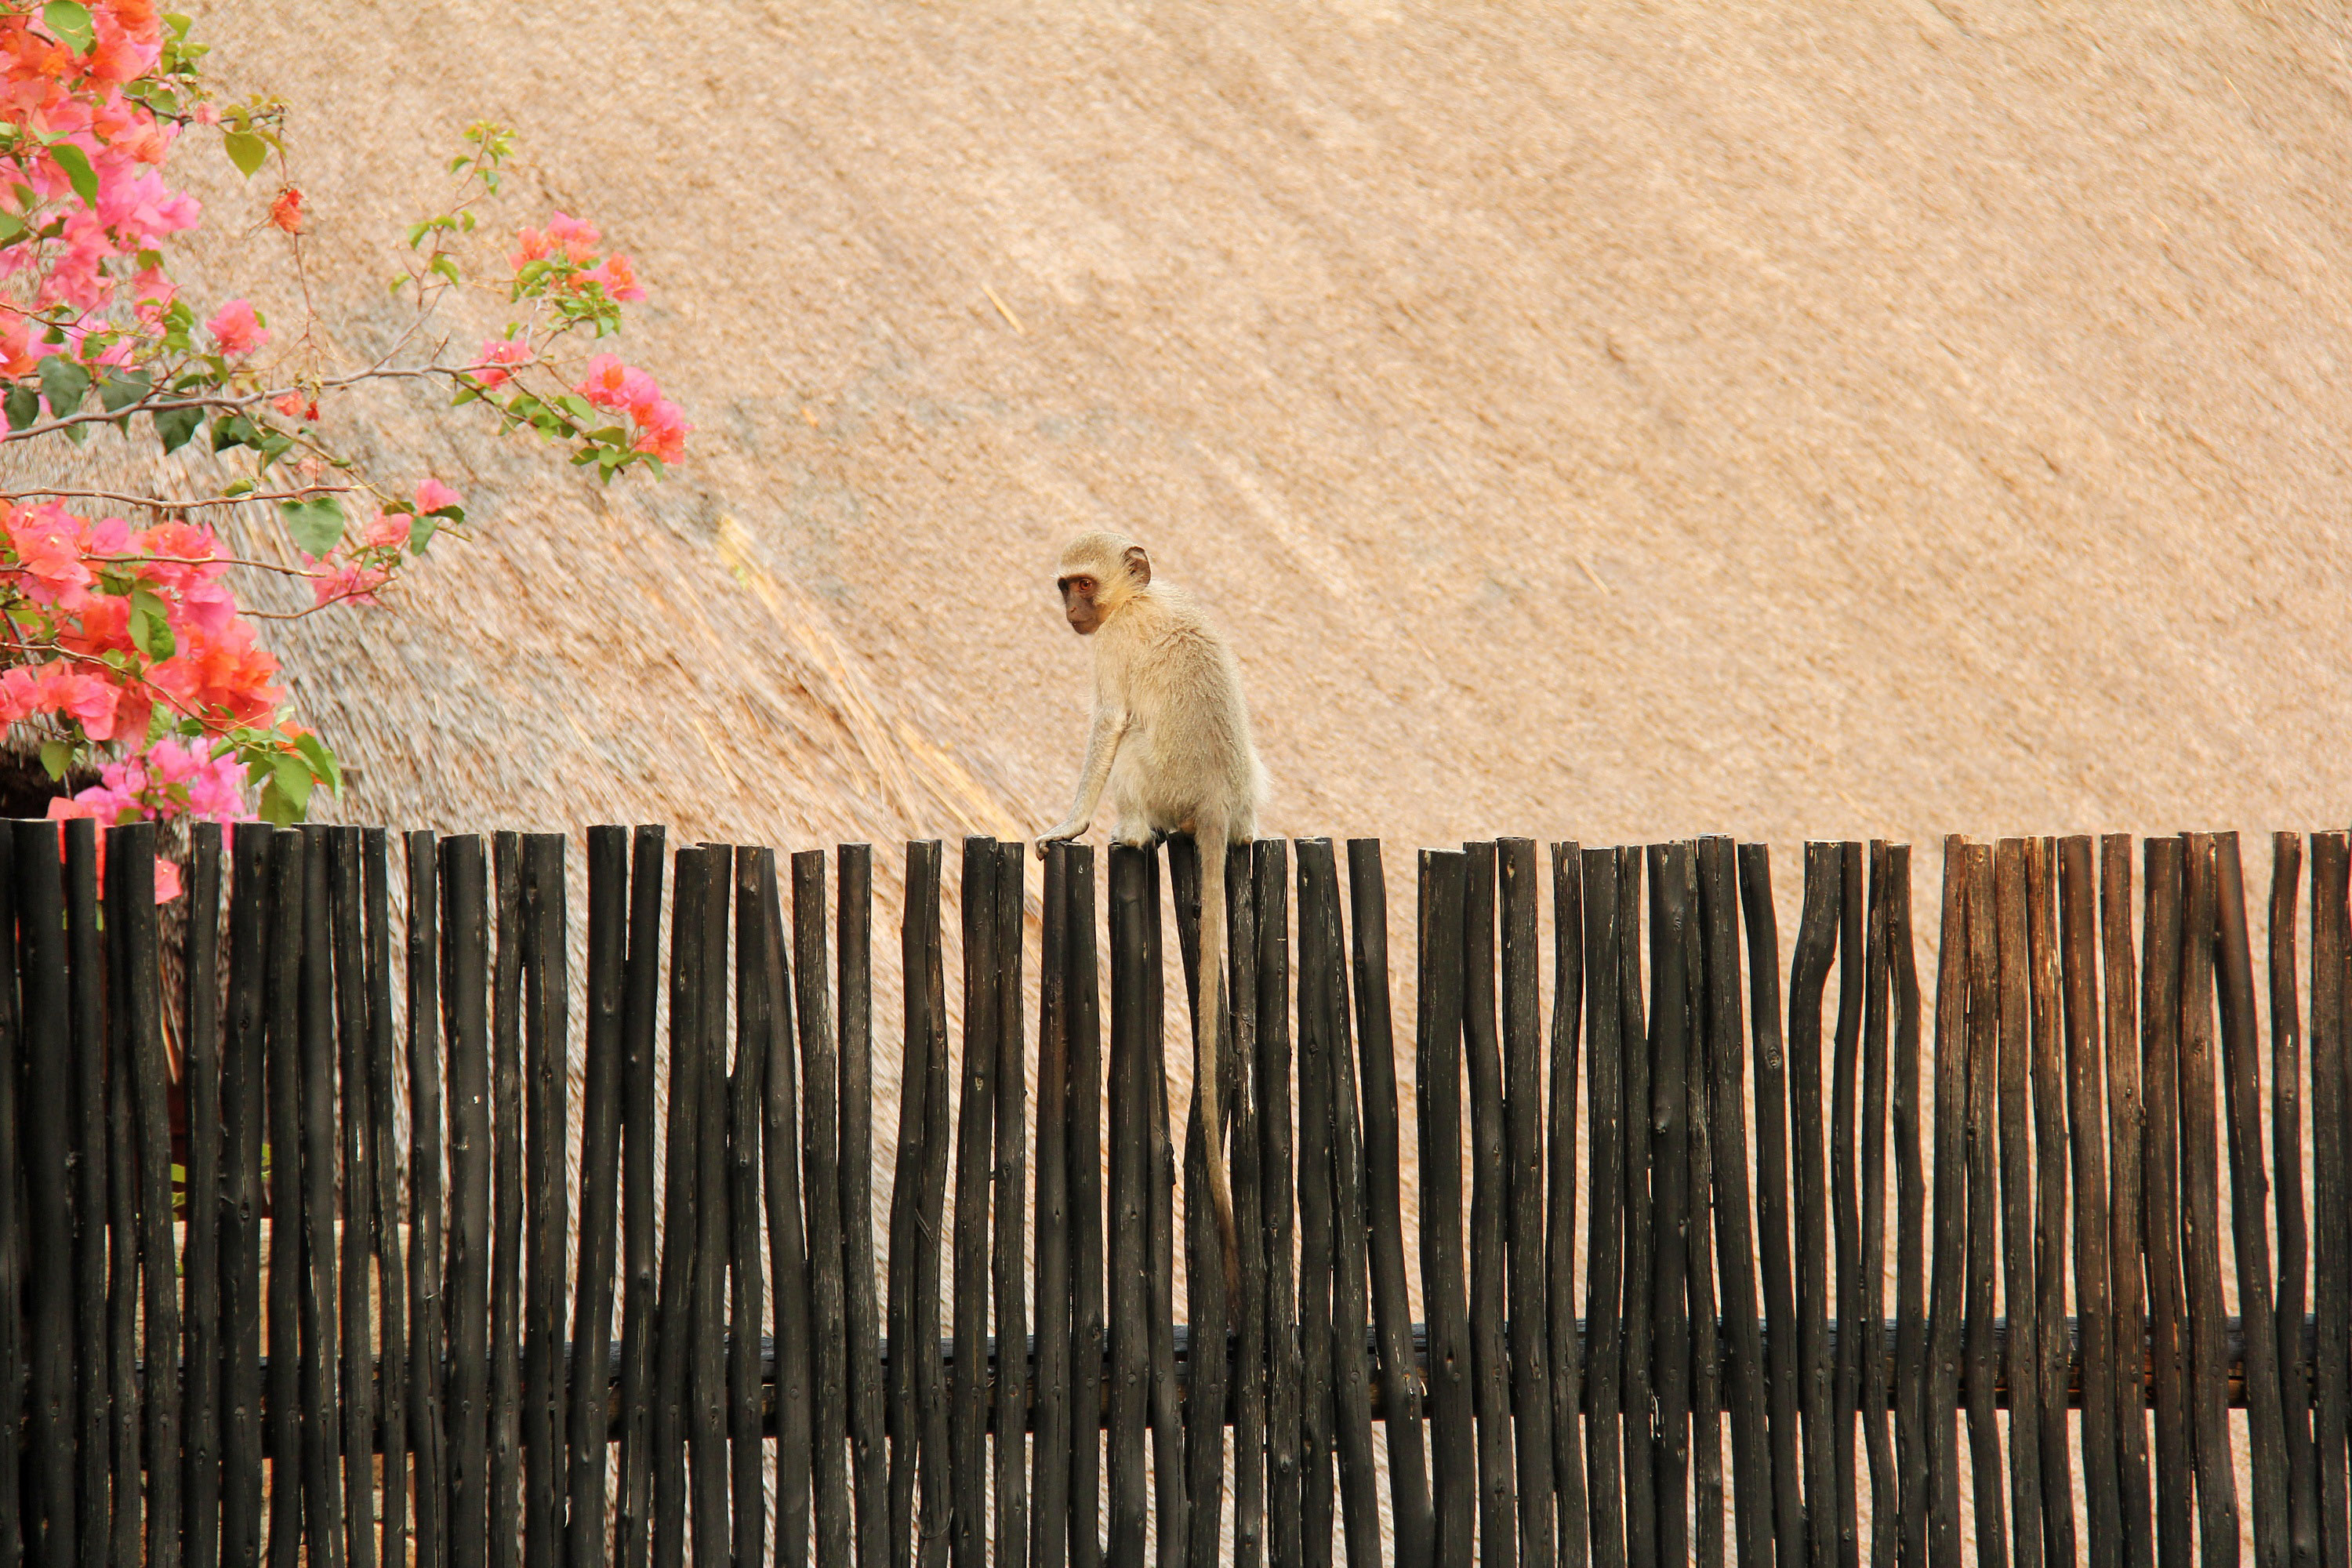 free stock photo of monkey on the fence in johannesburg south